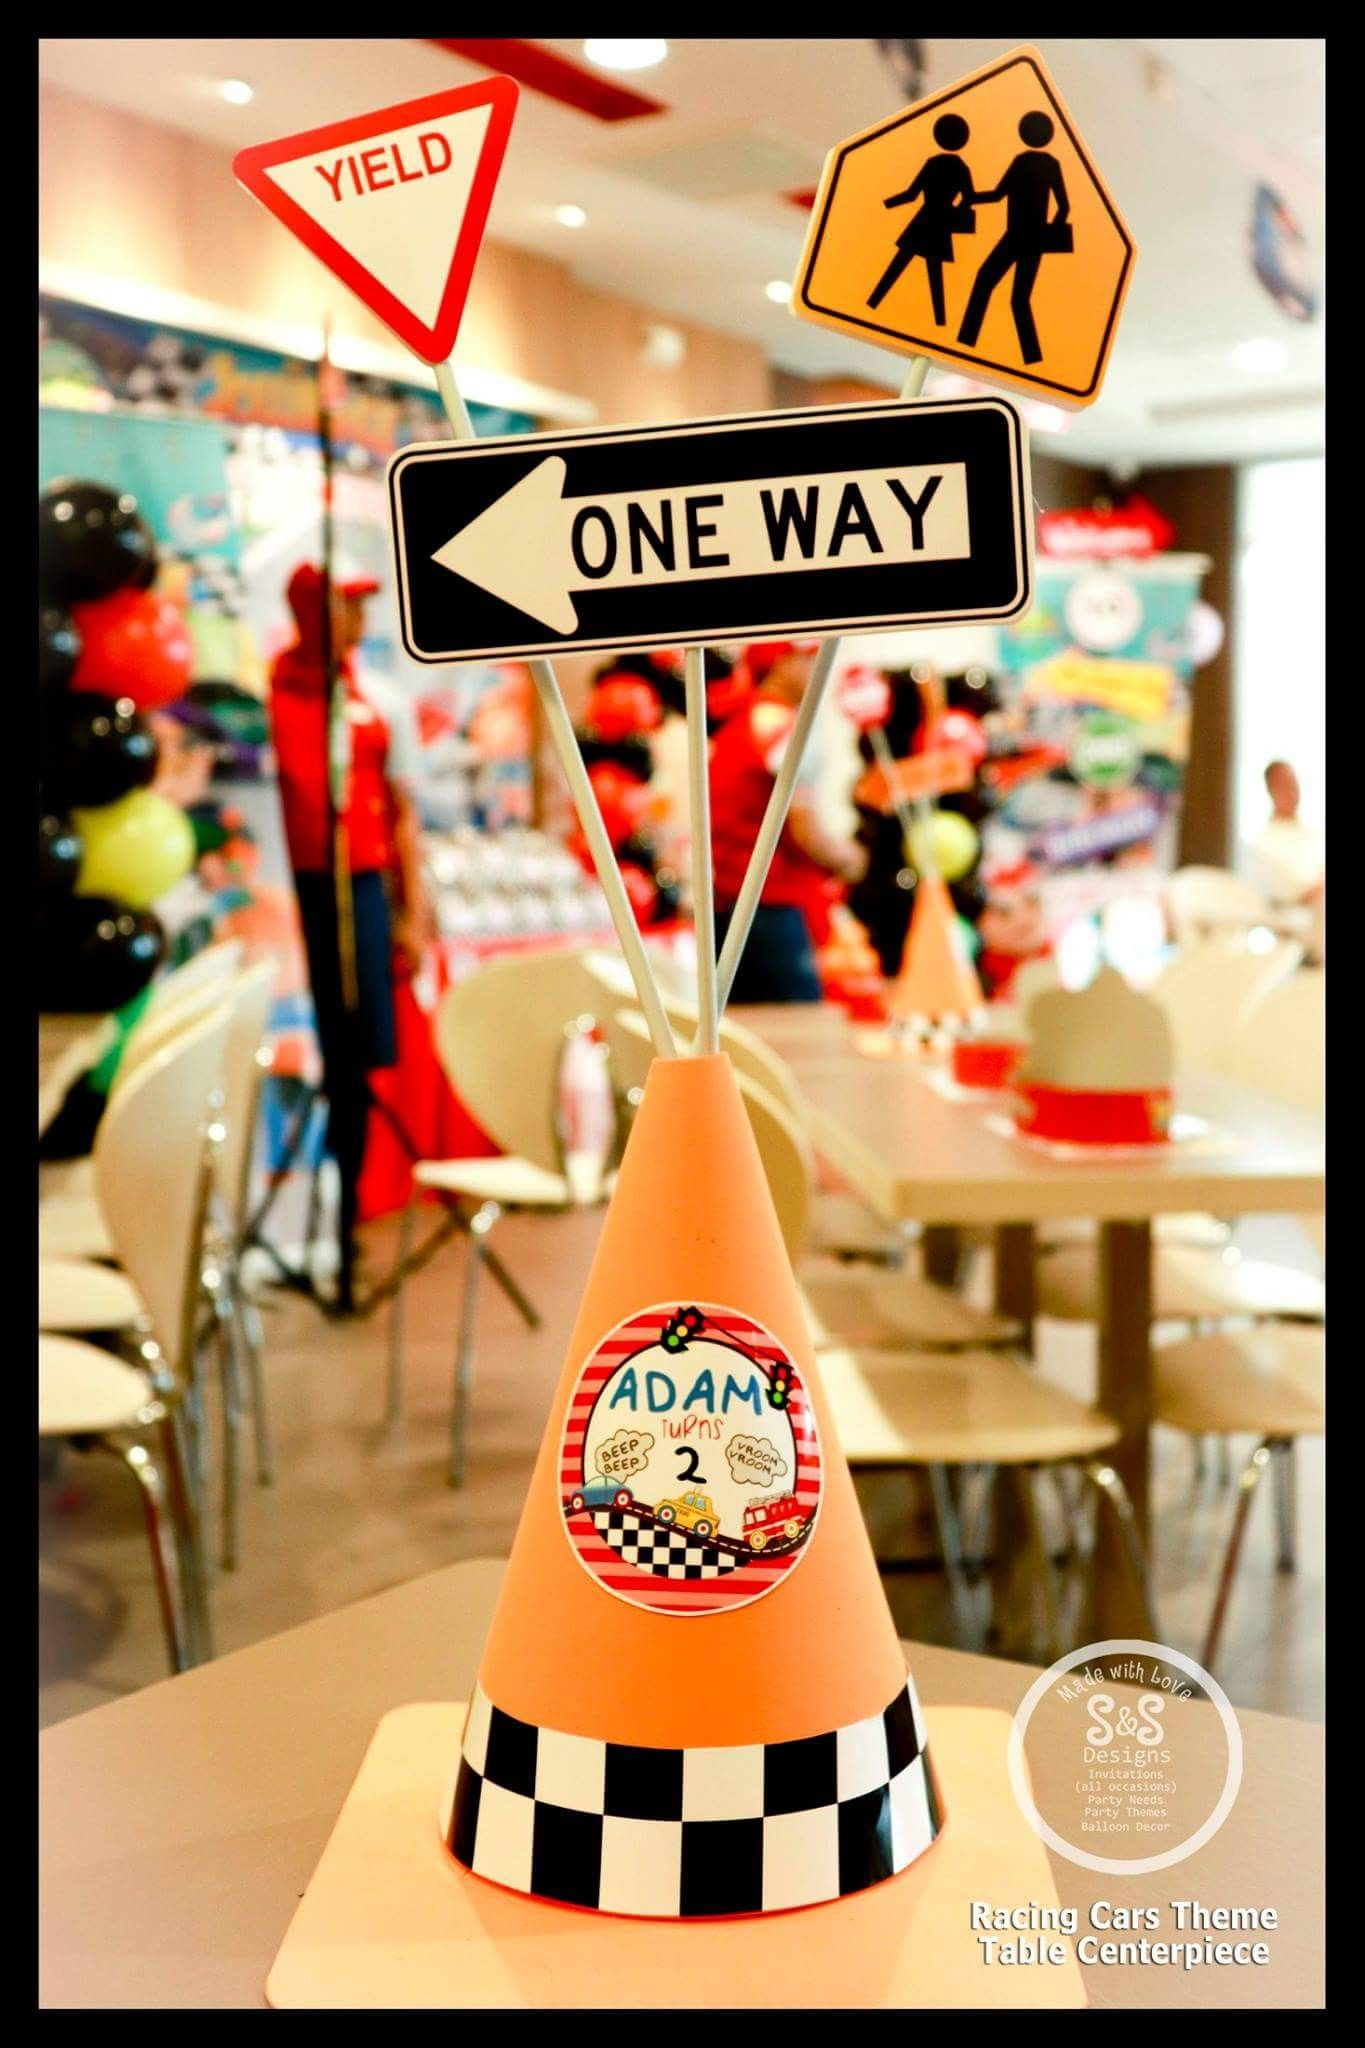 DIY Road Cones For Racing Cars Theme Party